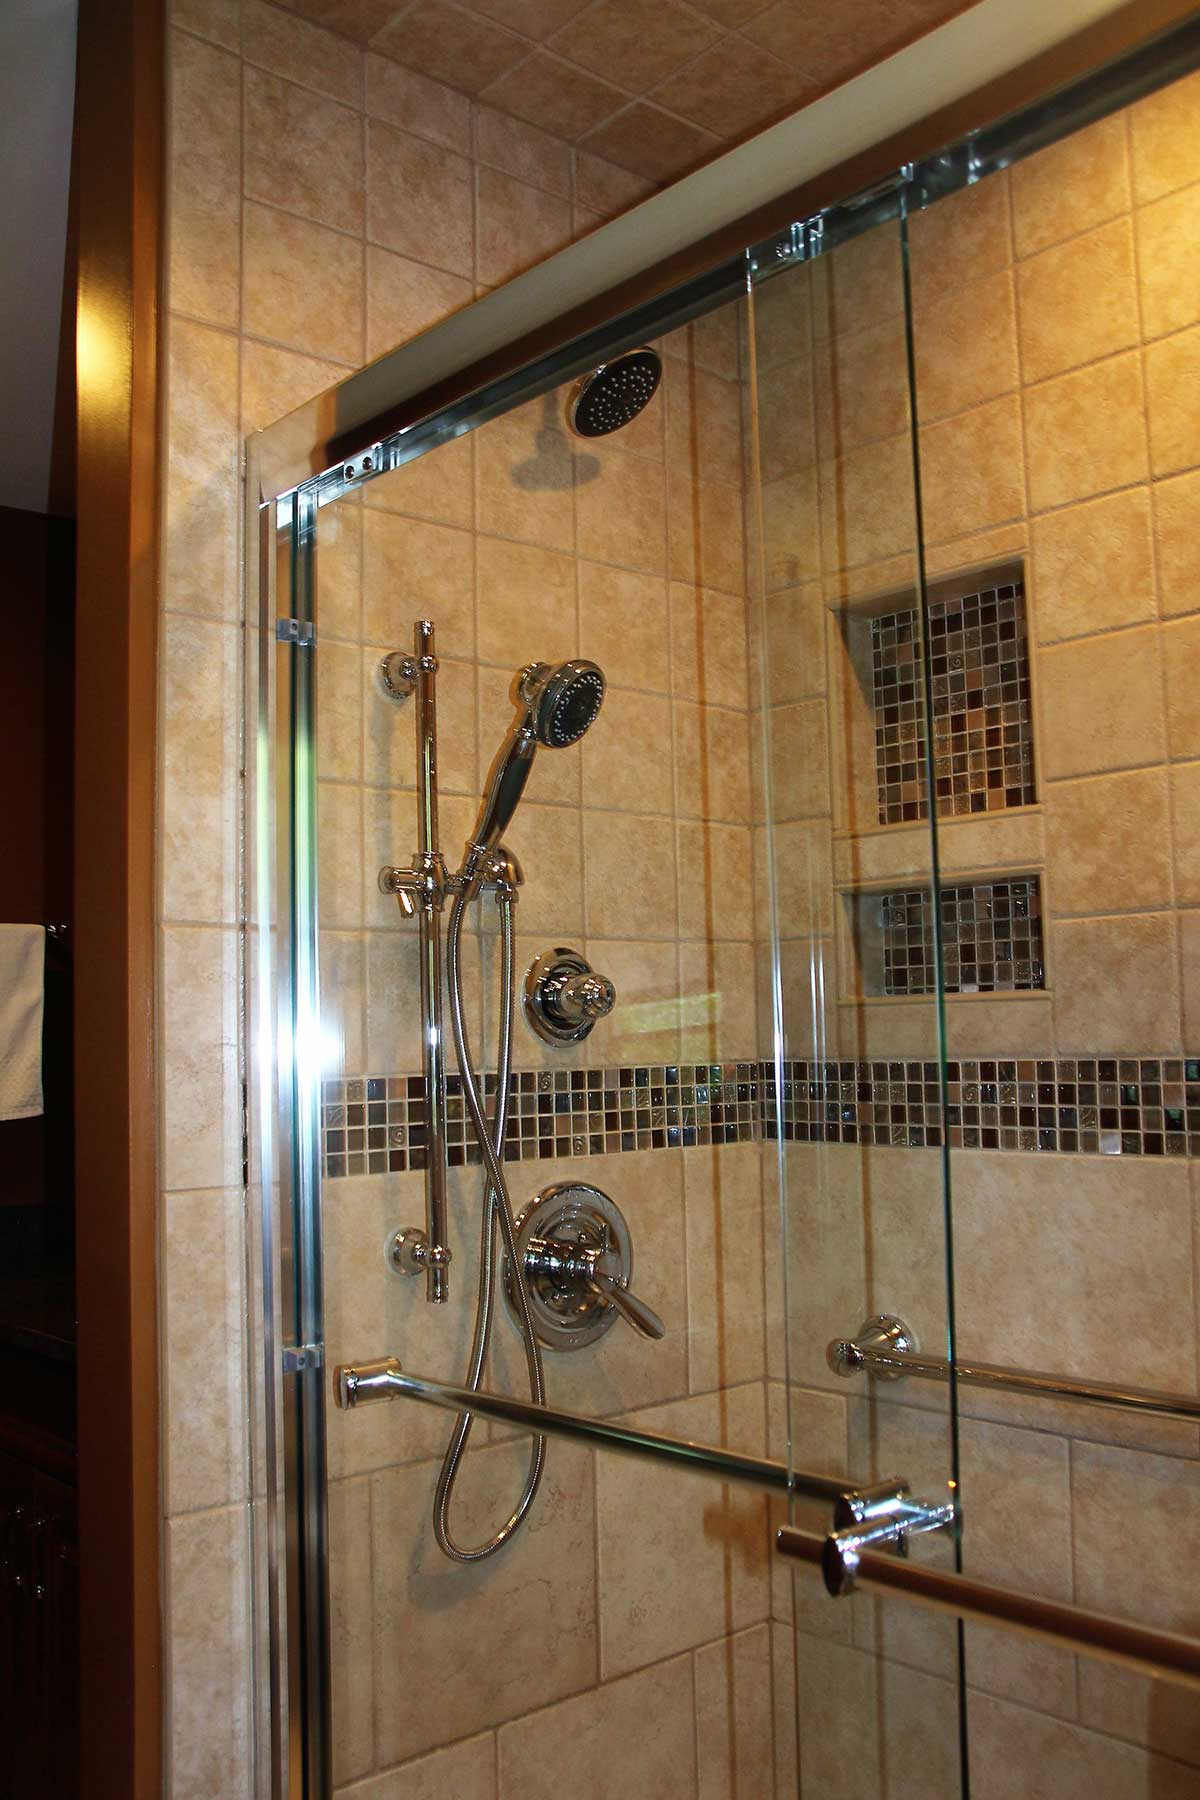 View of shower with built in nooks after remodeling